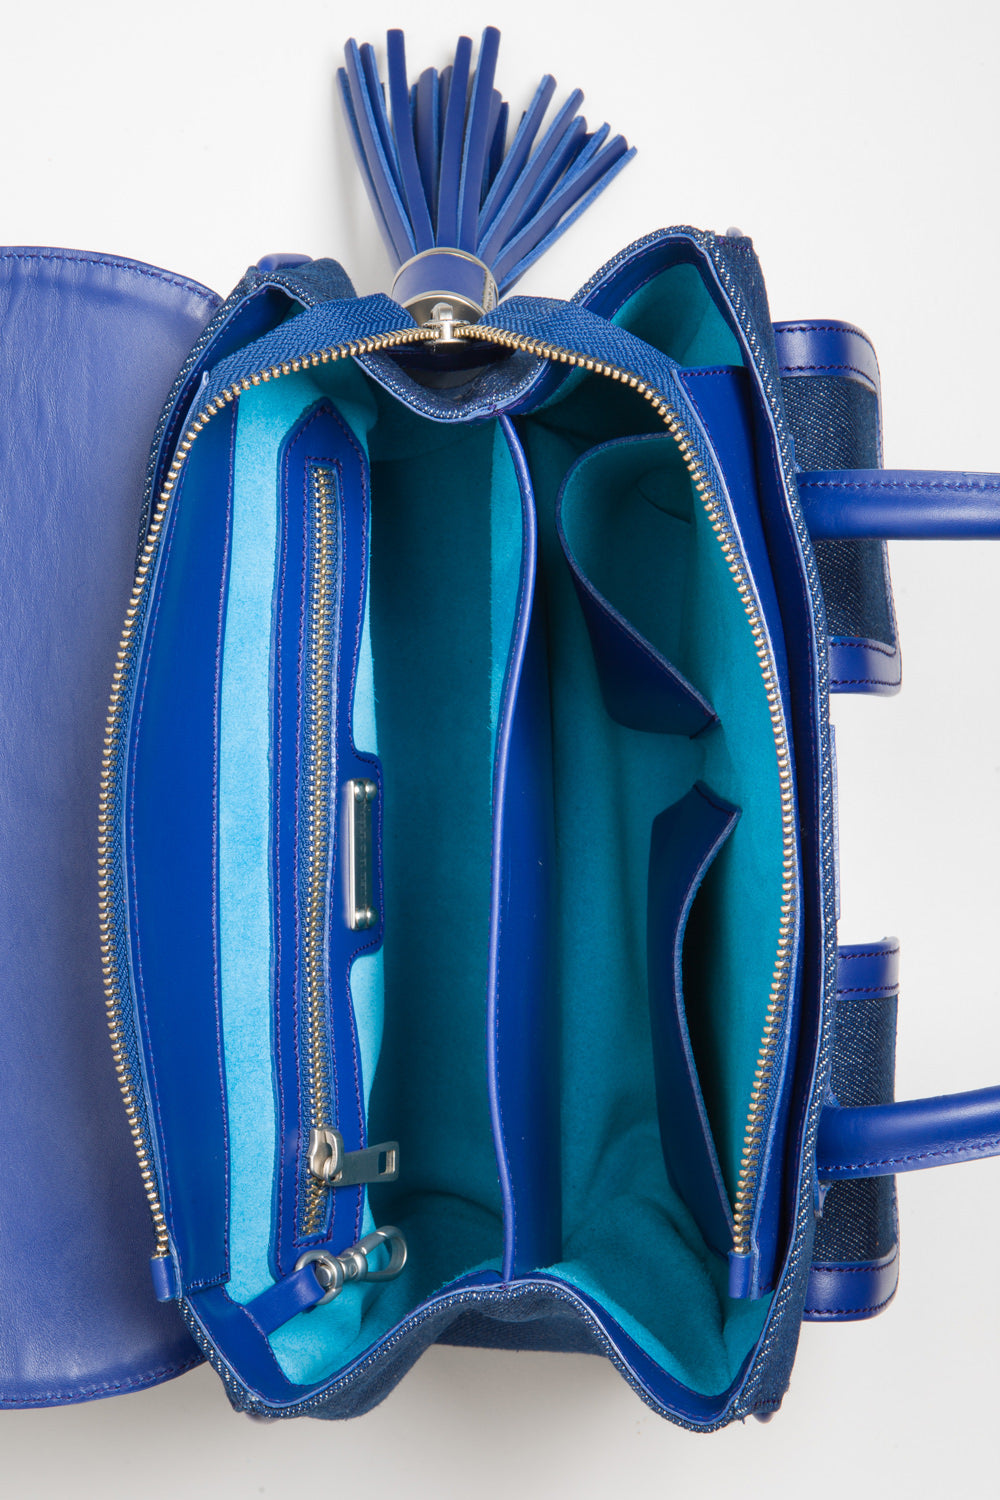 Denim & Cobalt Leather Christy Mini Tote | Turquoise Suede Lining Interior View | Mel Boteri